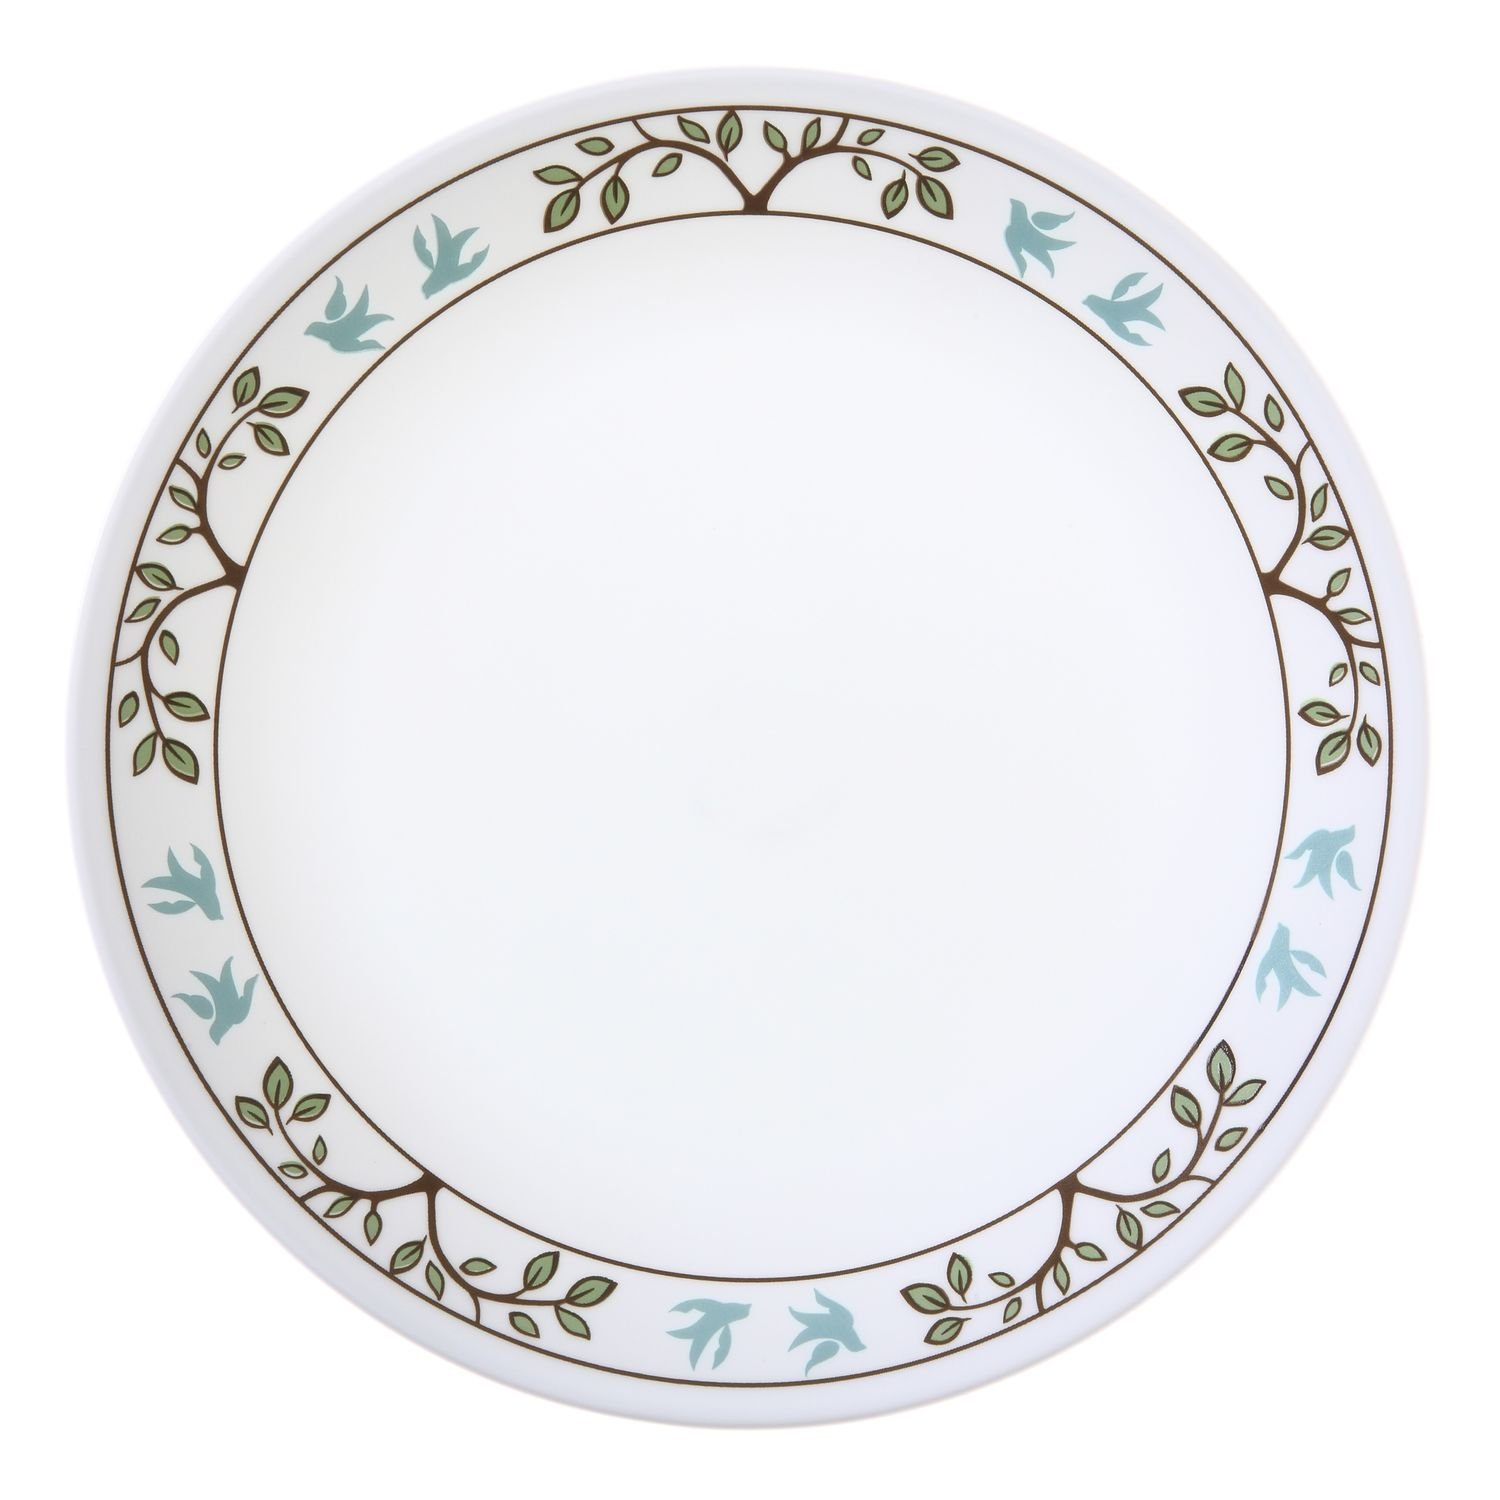 Corelle Livingware - Set of 8 Tree Bird Dinner Plates. Each Plate is 8.25 Inches in Diameter by .75 Inches Thick.